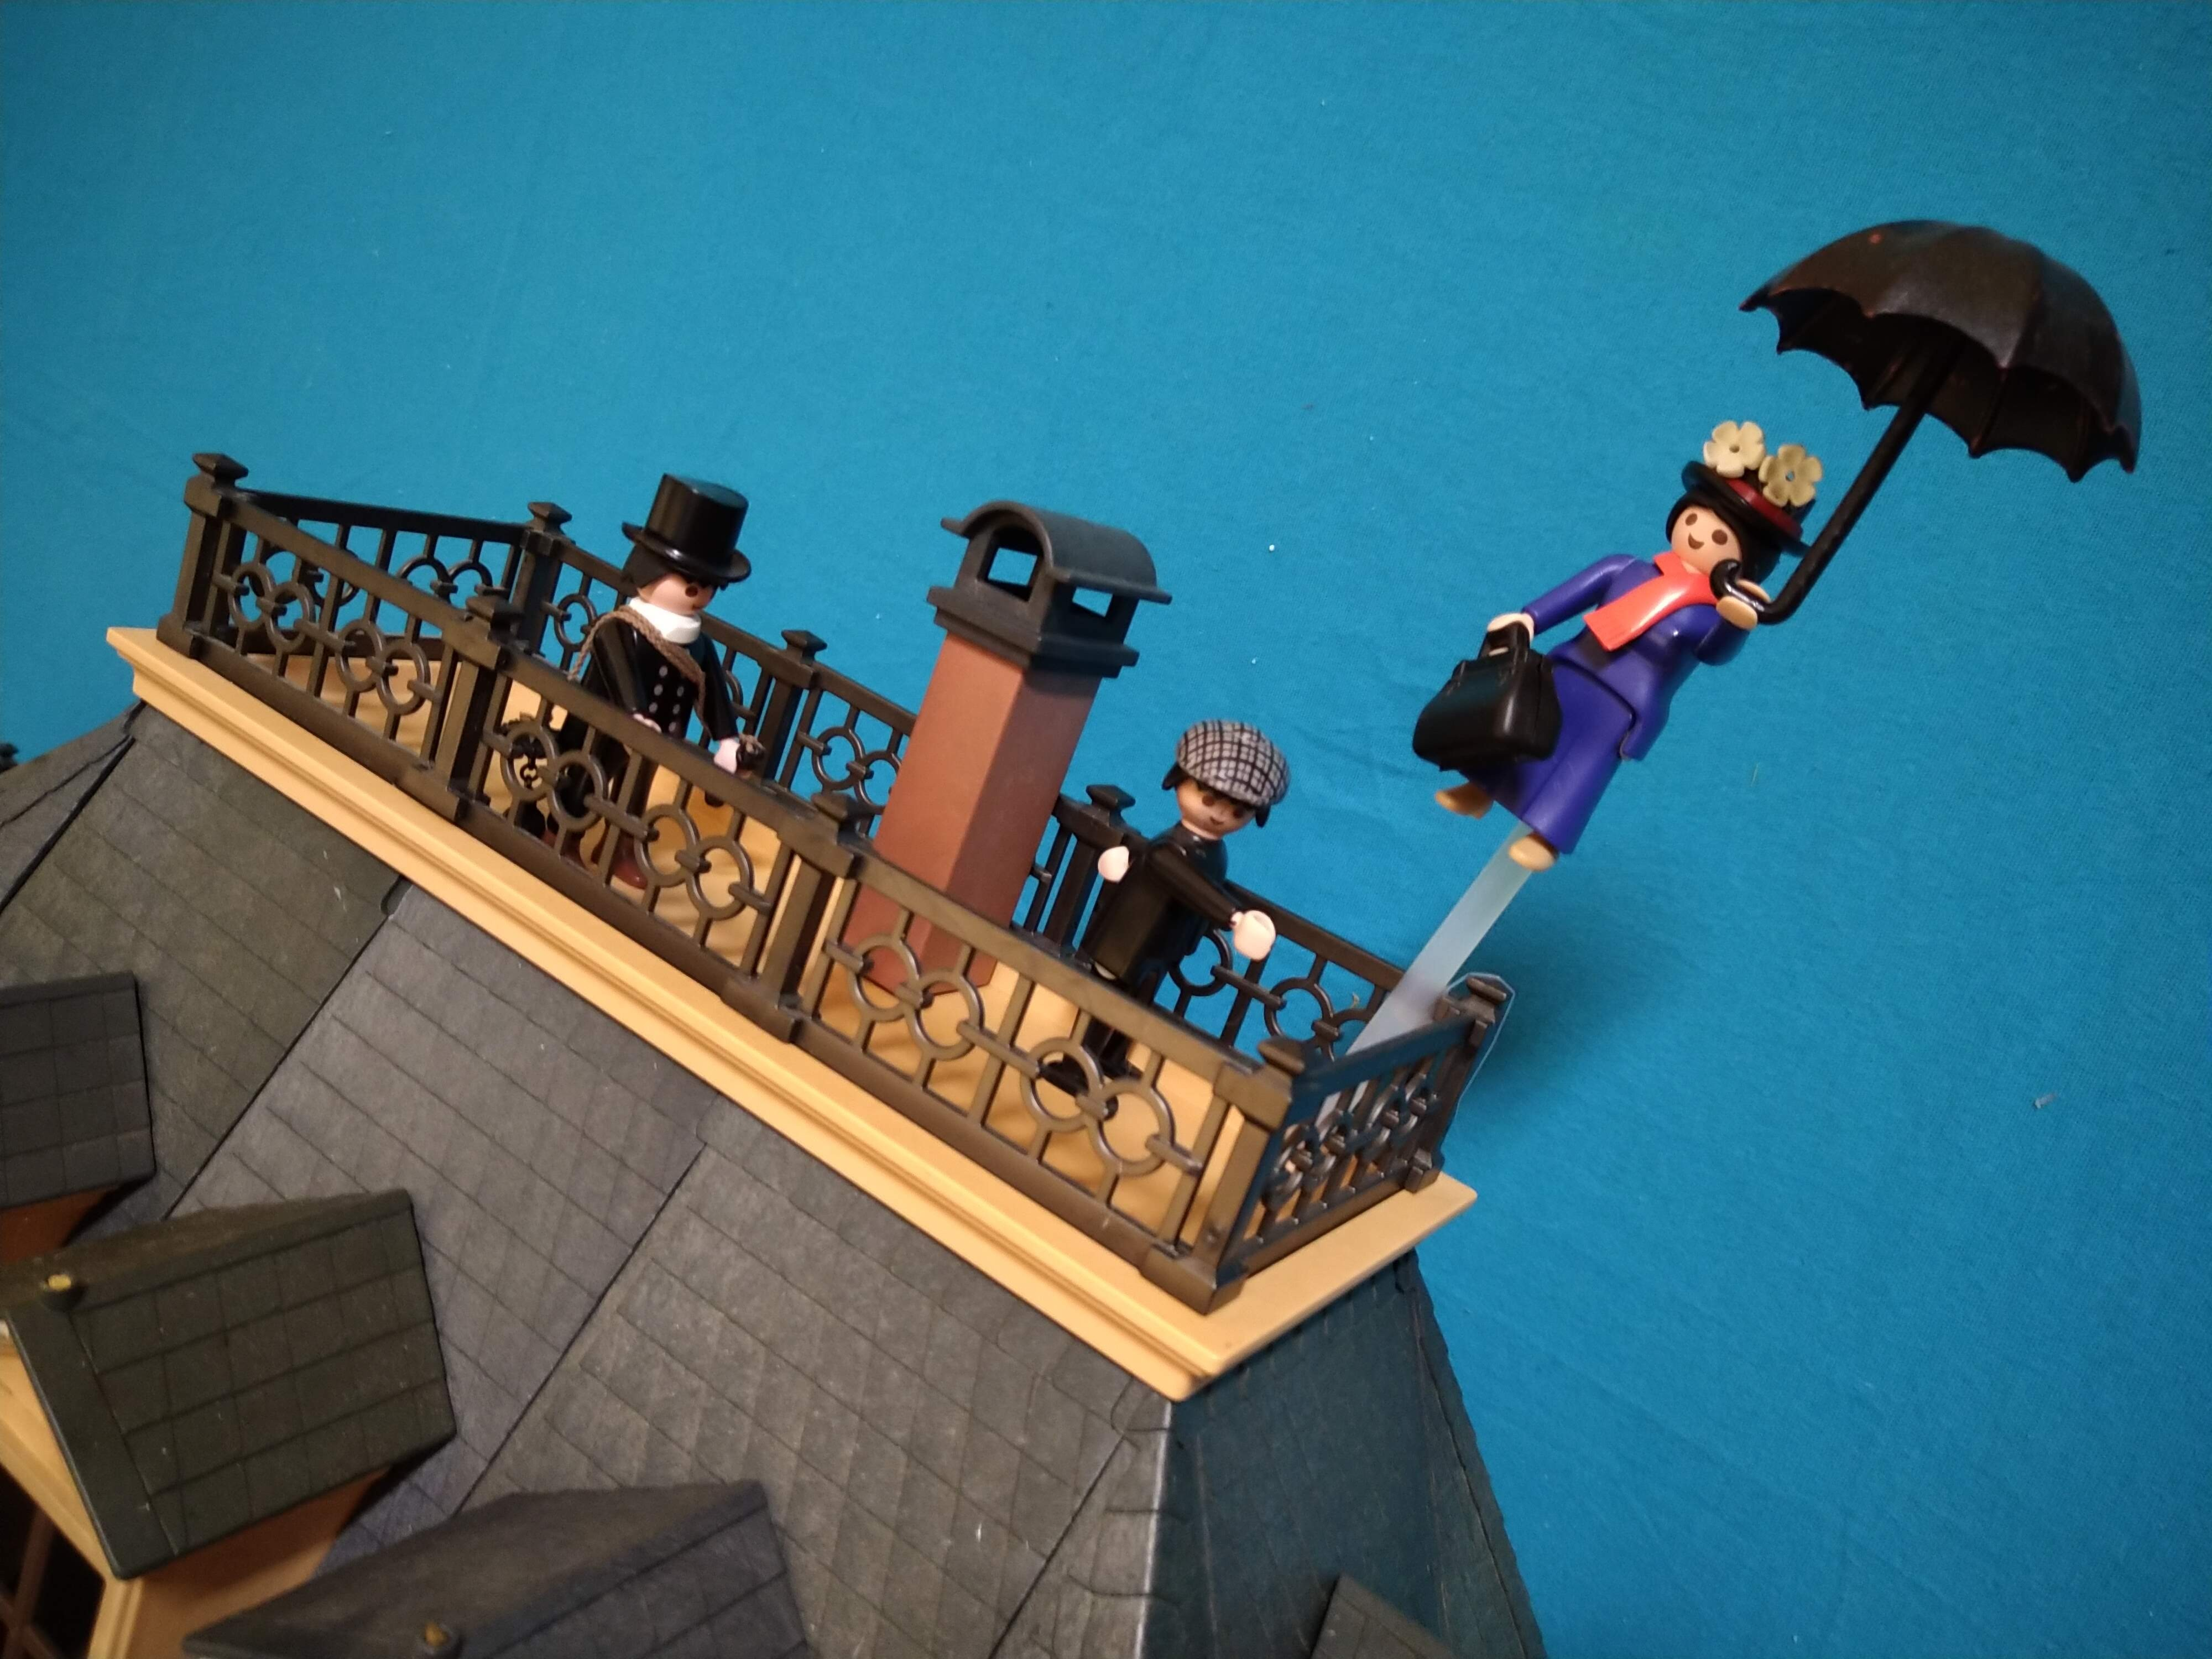 Mary poppins en playmobil